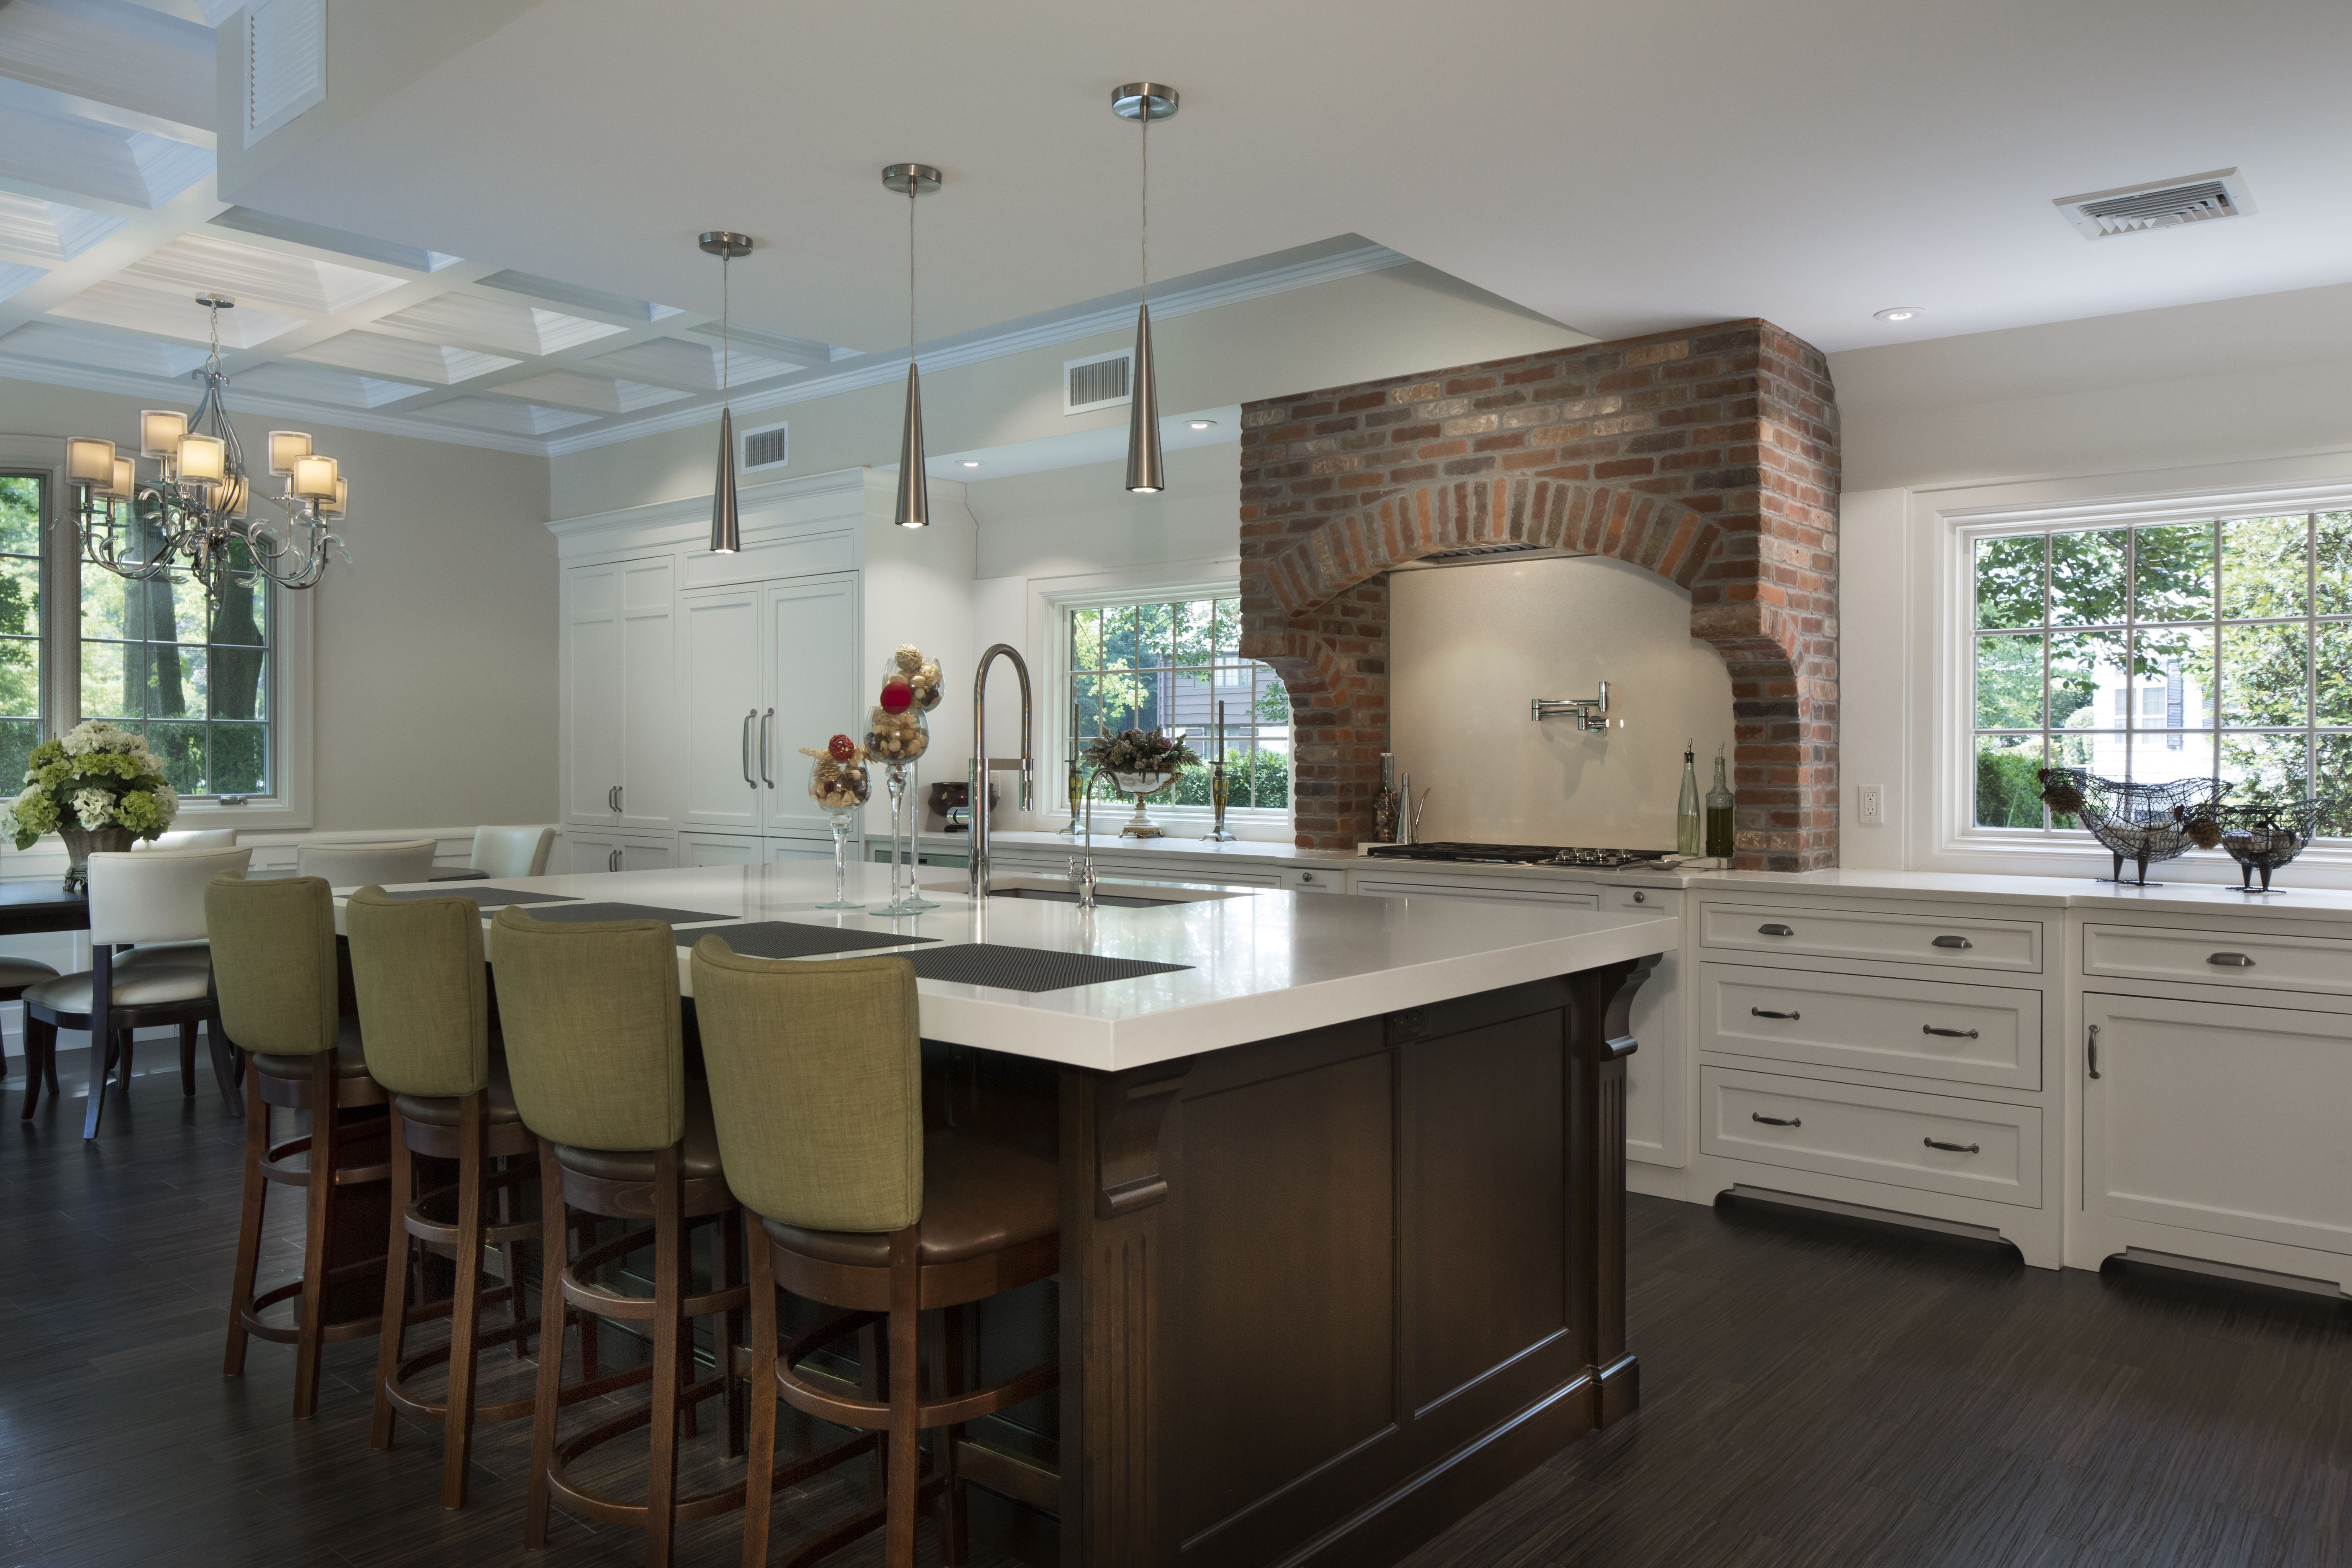 Ruttcabinetry Stars In This Great Neck Ny Kitchen Designed By